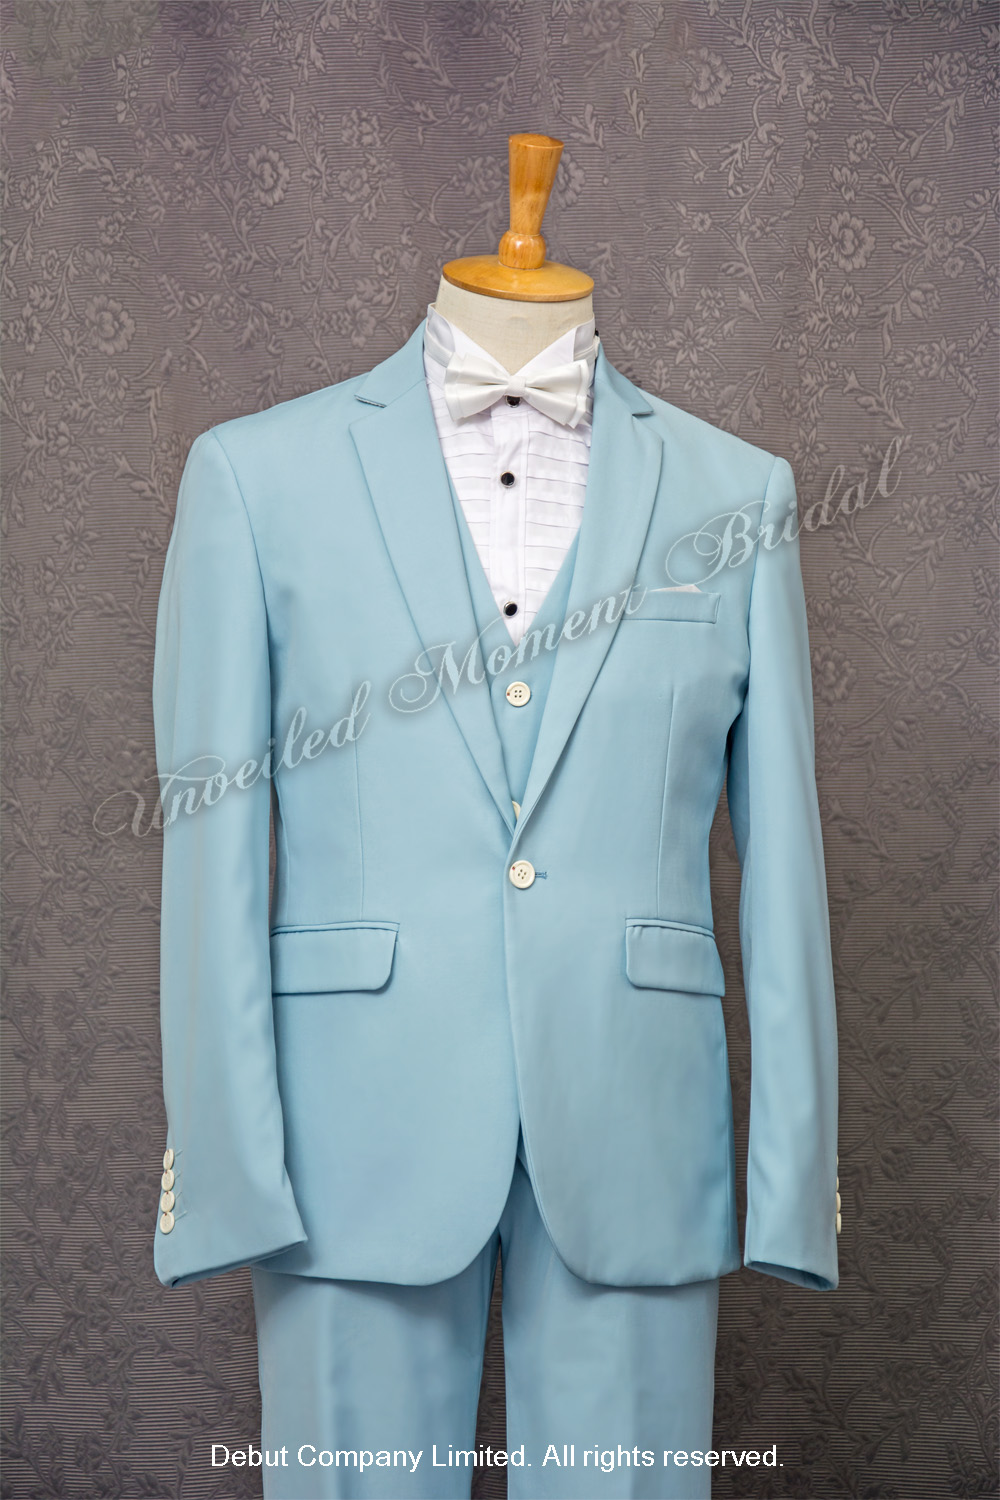 Sky blue suit-style tuxedo, matched with light blue waistcoat and white bow. 白色領結bow tie, 淺藍色馬甲背心, 天藍色西裝款新郎禮服